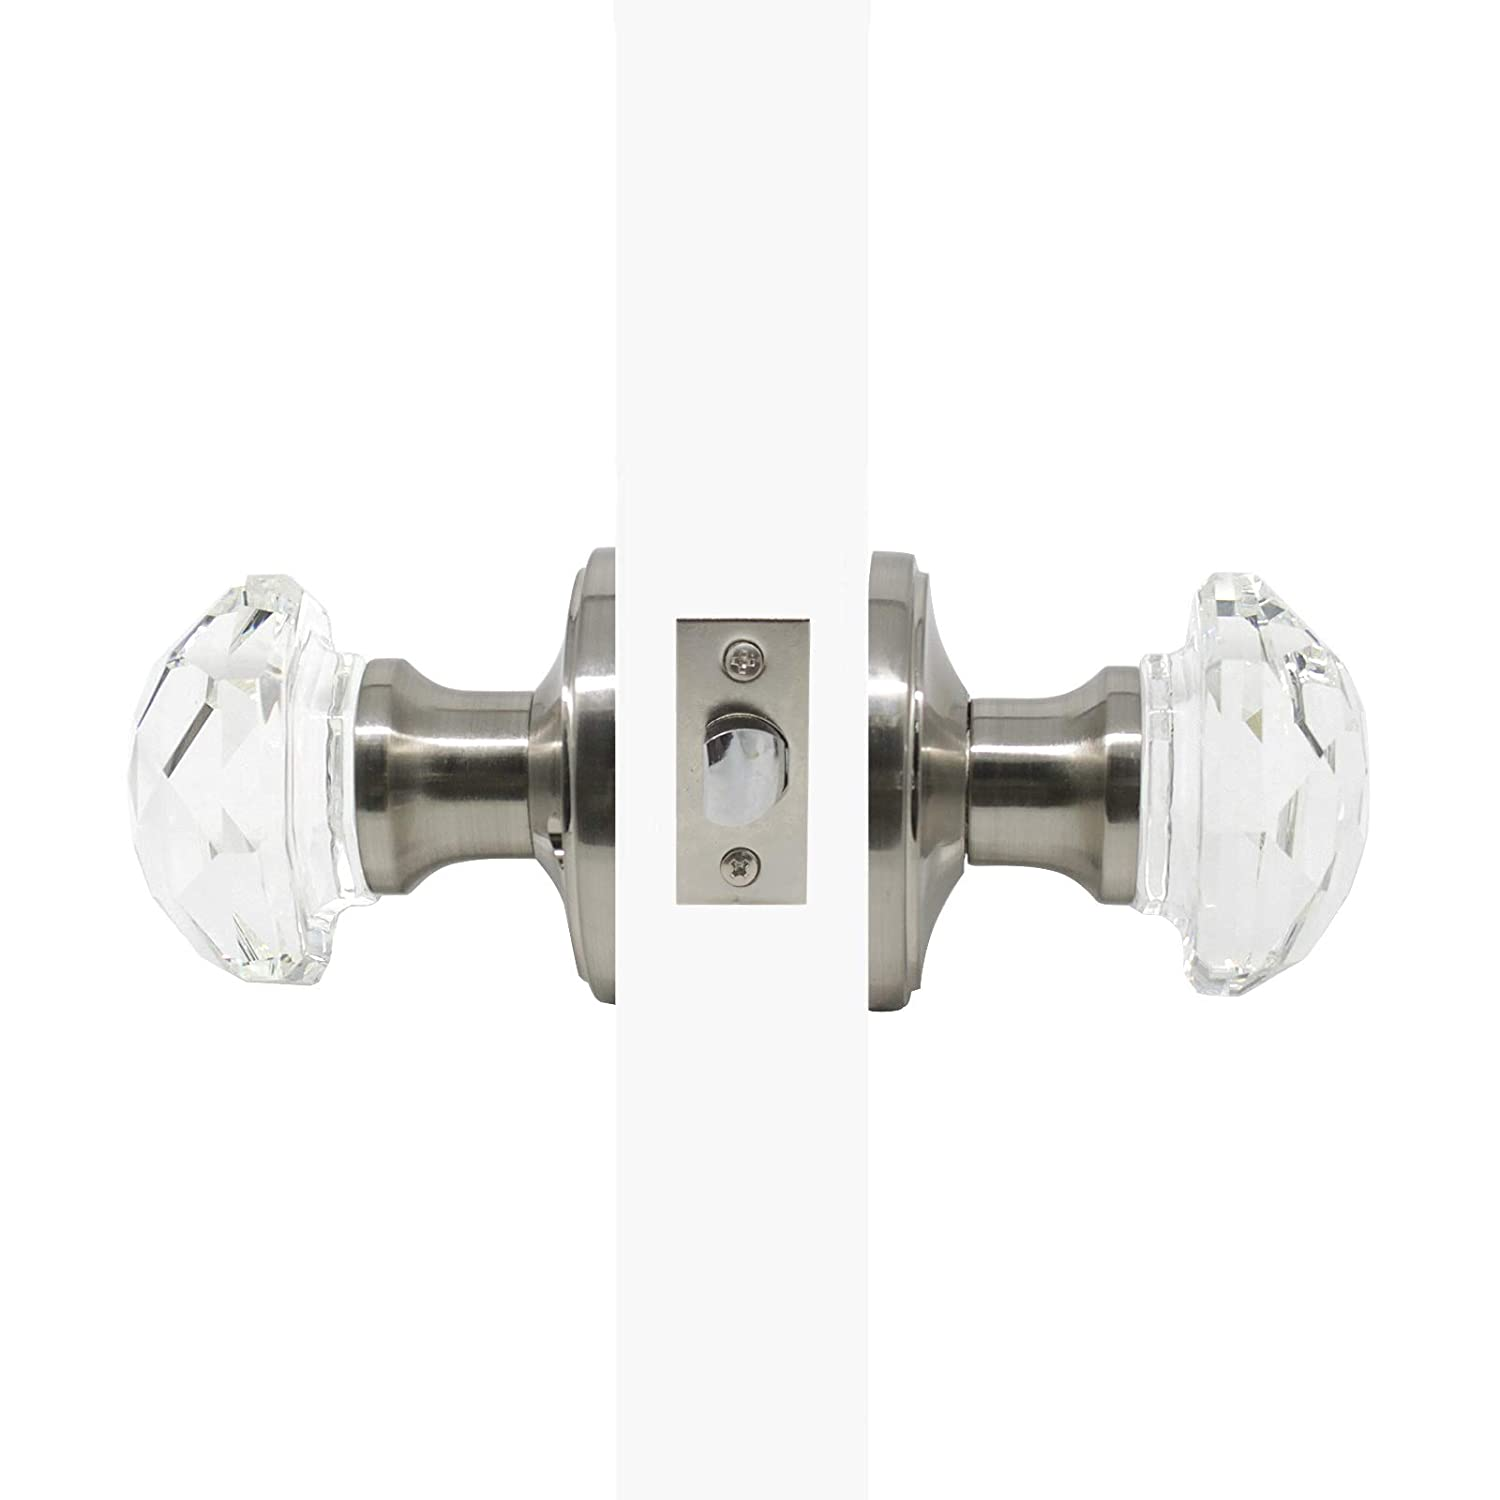 Rosette Crystal Passage Door Knobs,Interior Door Locks for Hall//Closet,Satin Nickel Finished 3Pack